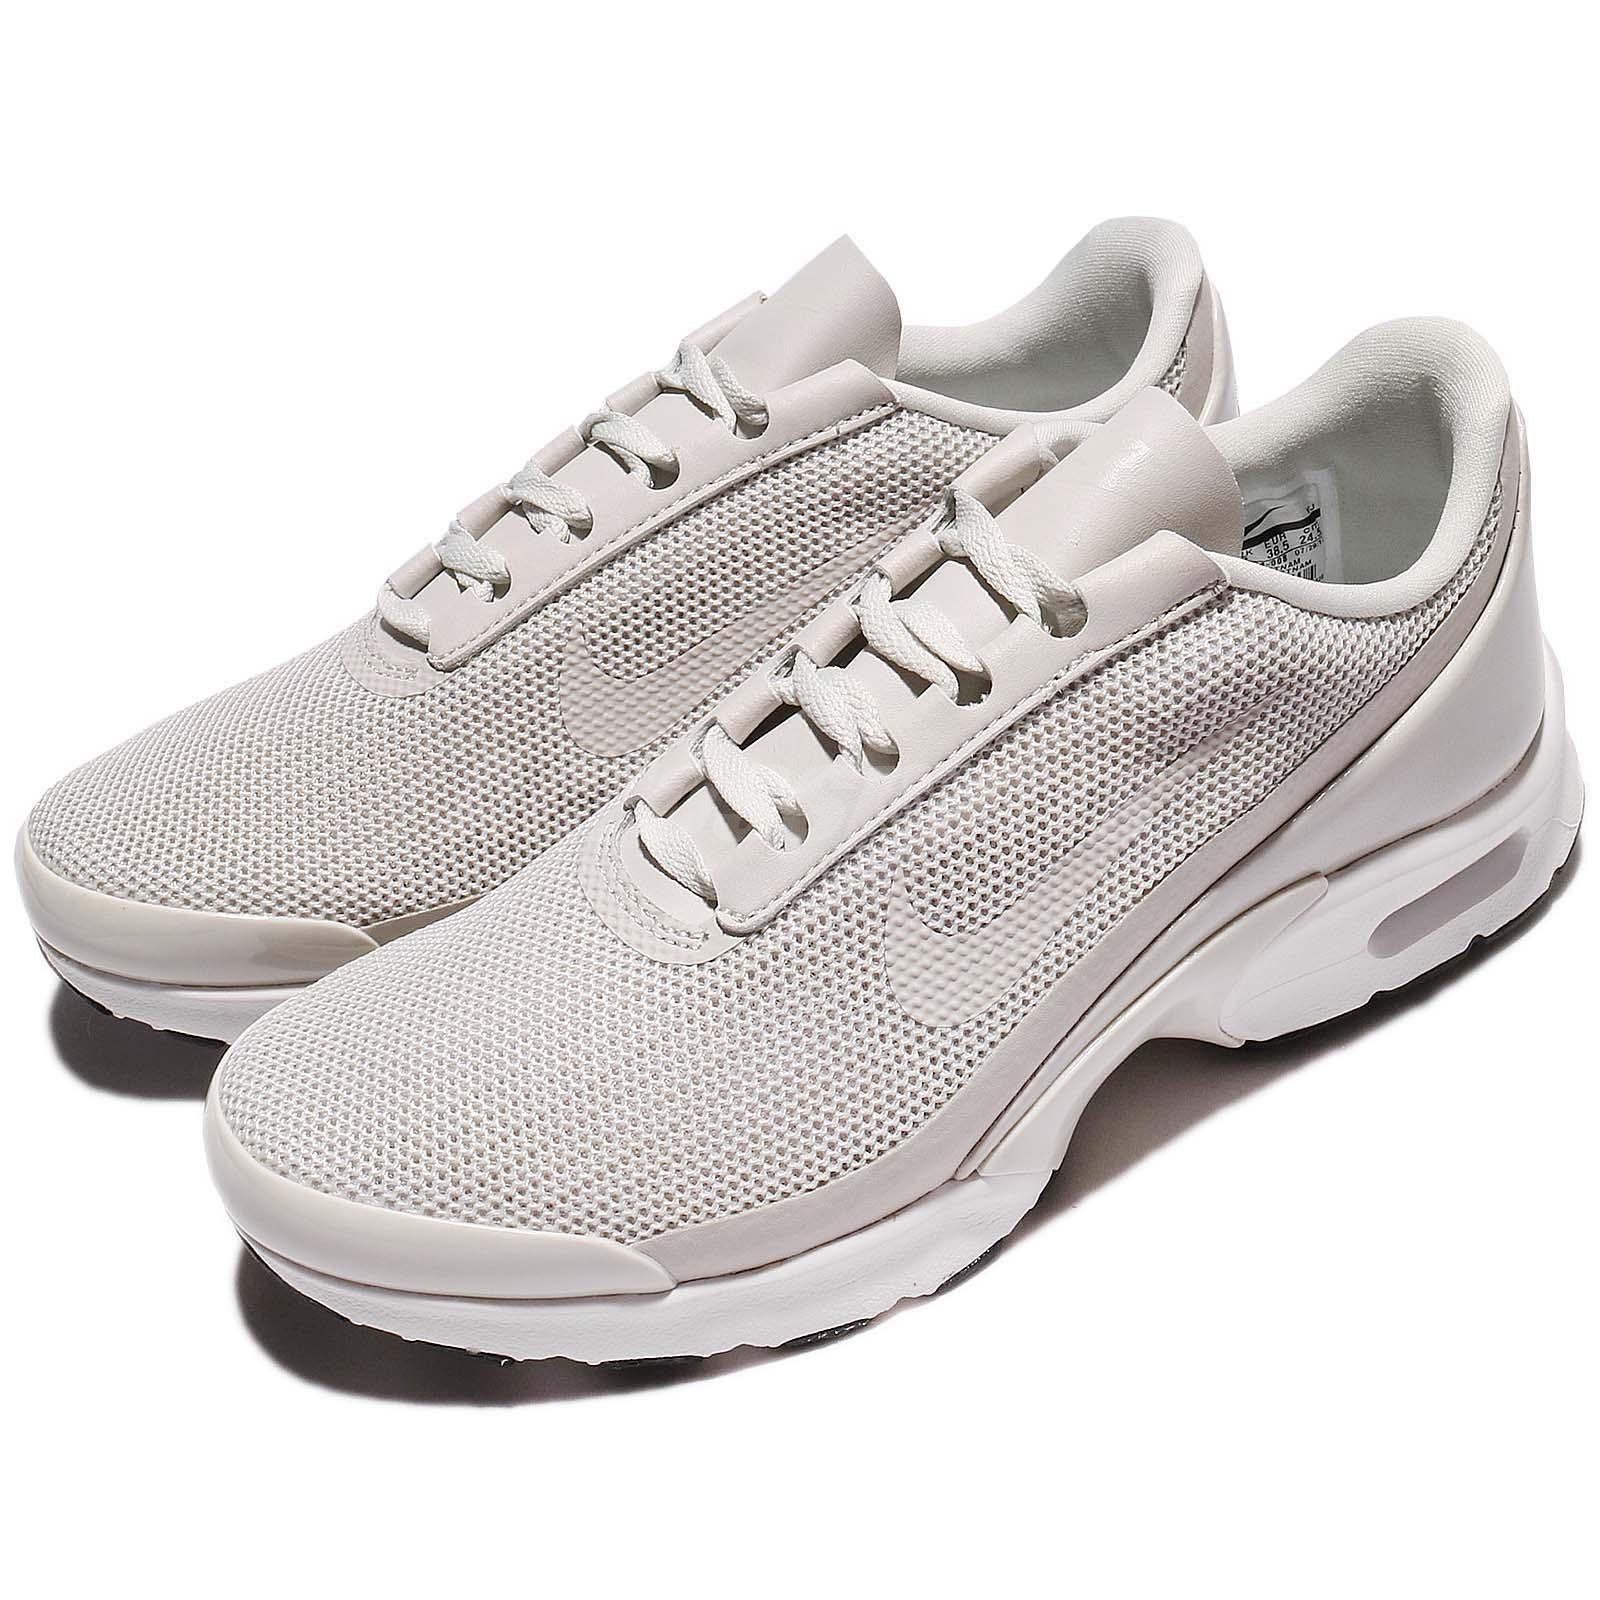 aa01af85a4 Details about Nike Wmns Air Max Jewell Light Bone Women Running Shoes  Sneakers 896194-008